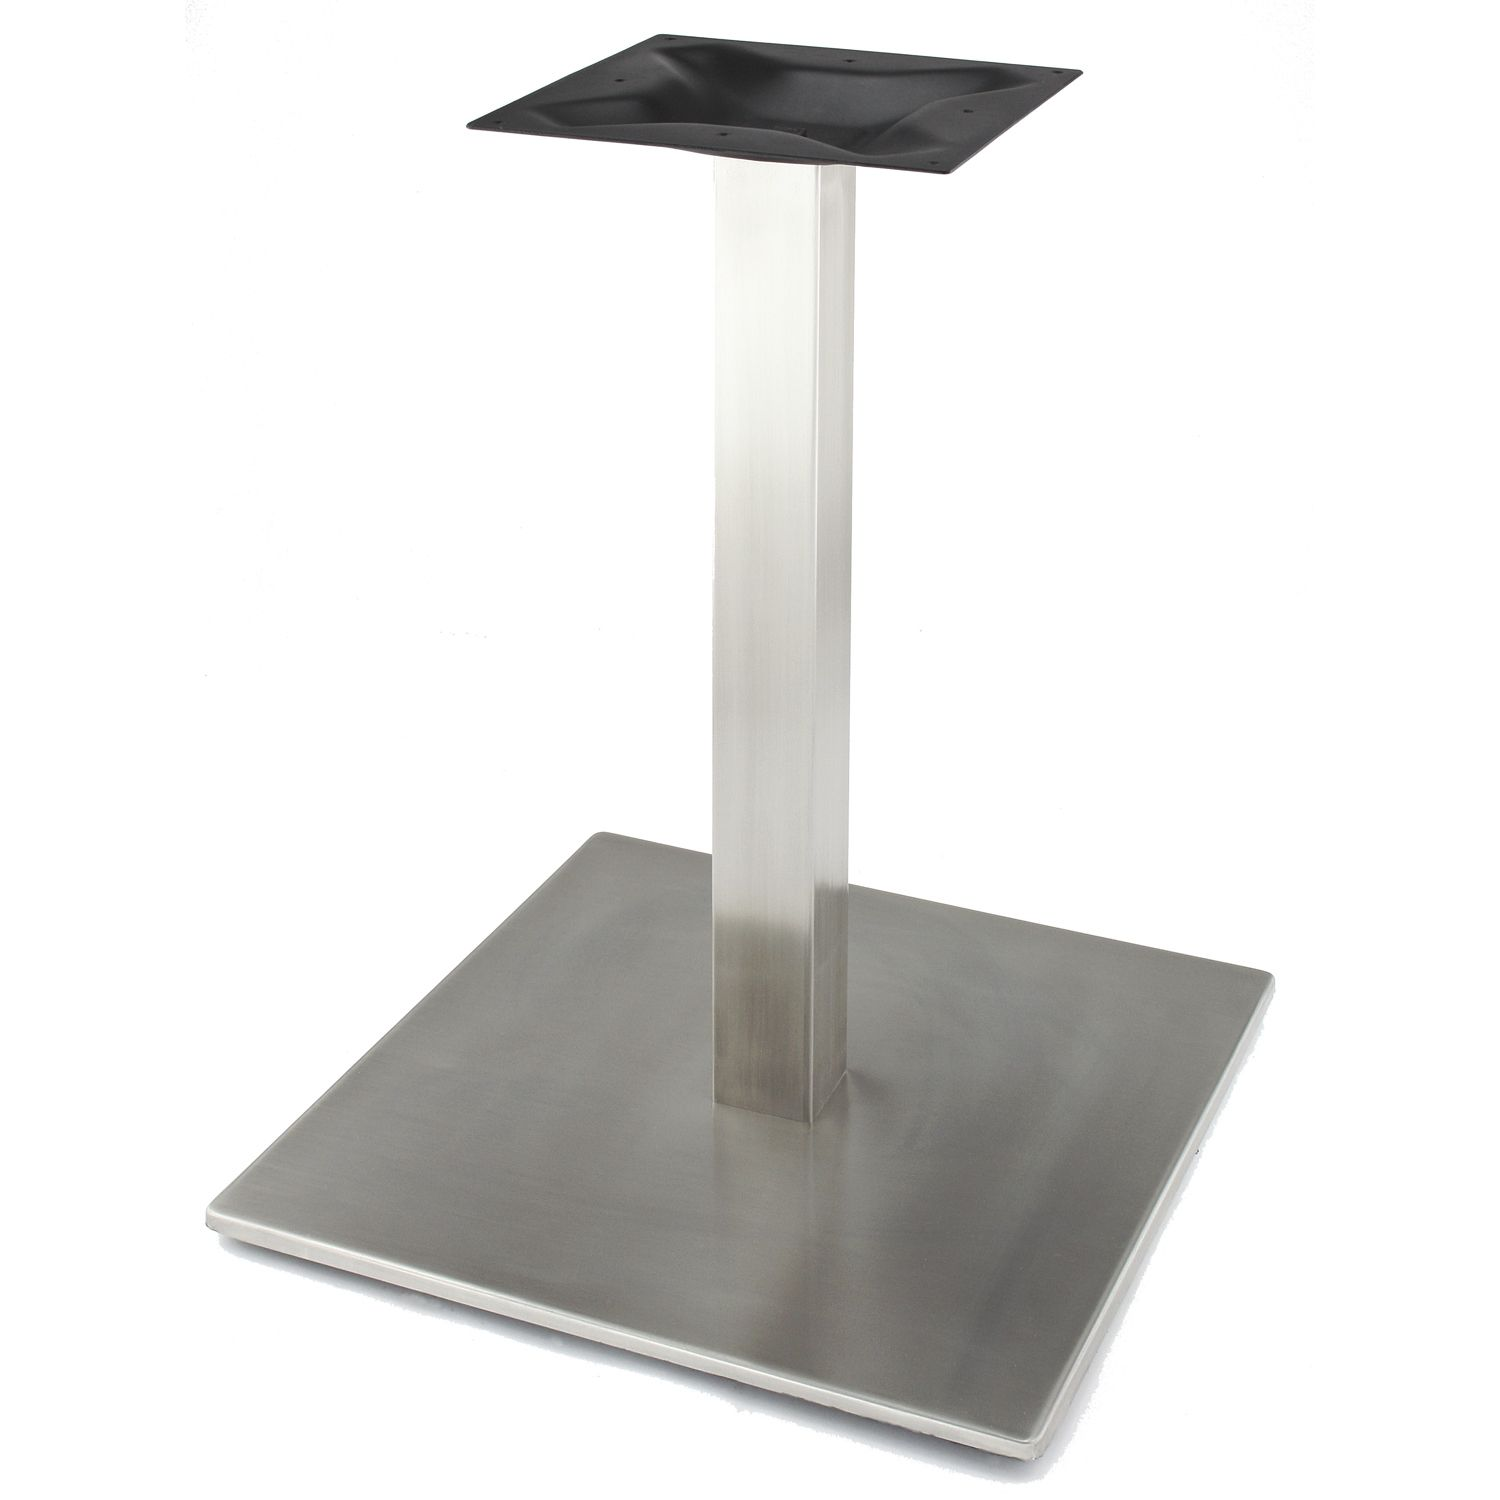 RSQ540 Stainless Steel Table Base